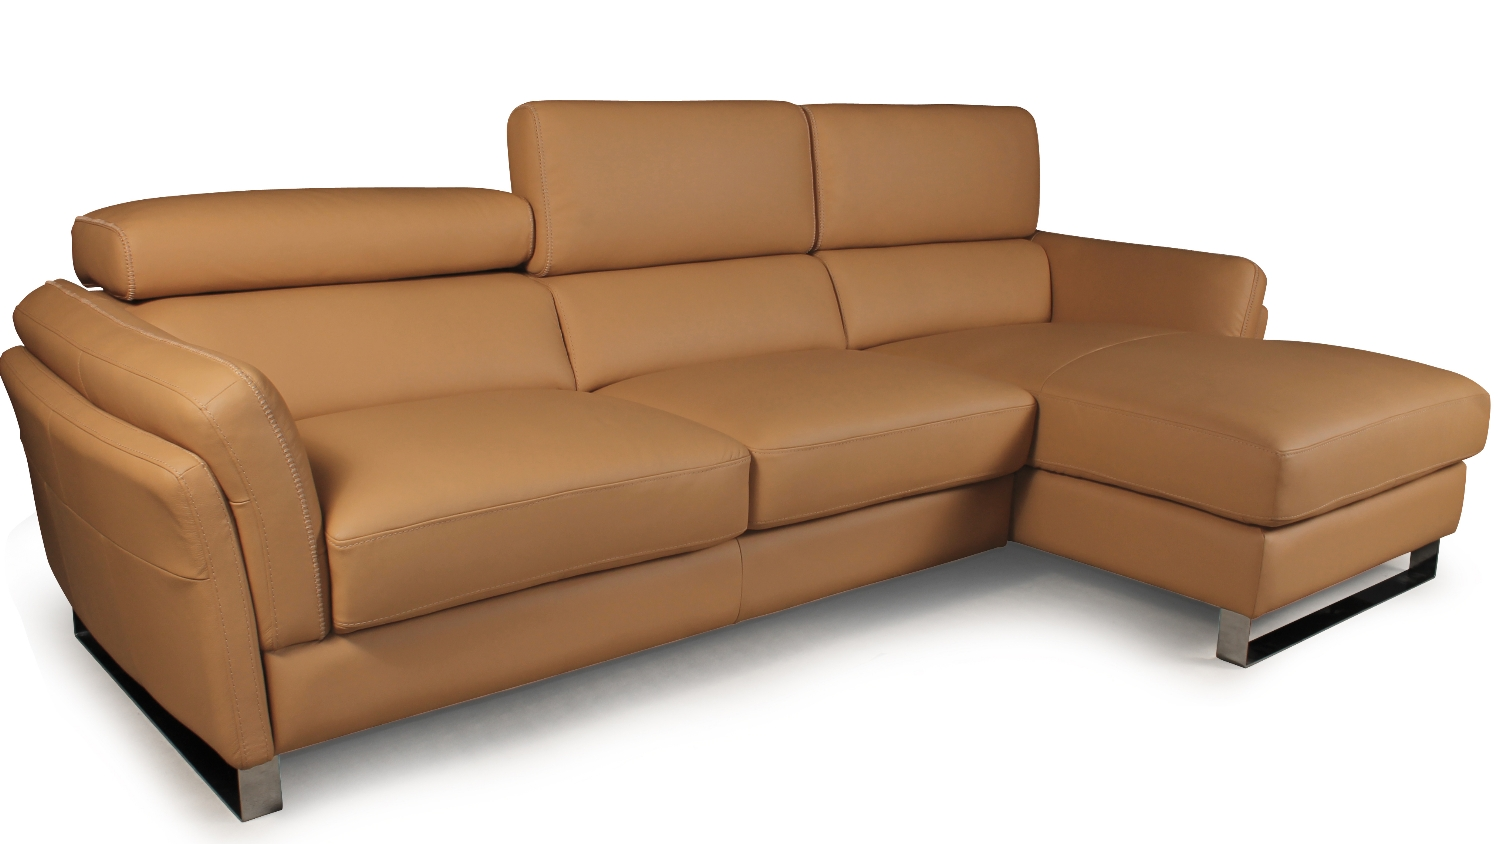 Harper 3 seater sofa with chaise lounge harvey norman for Chaise lounge couch